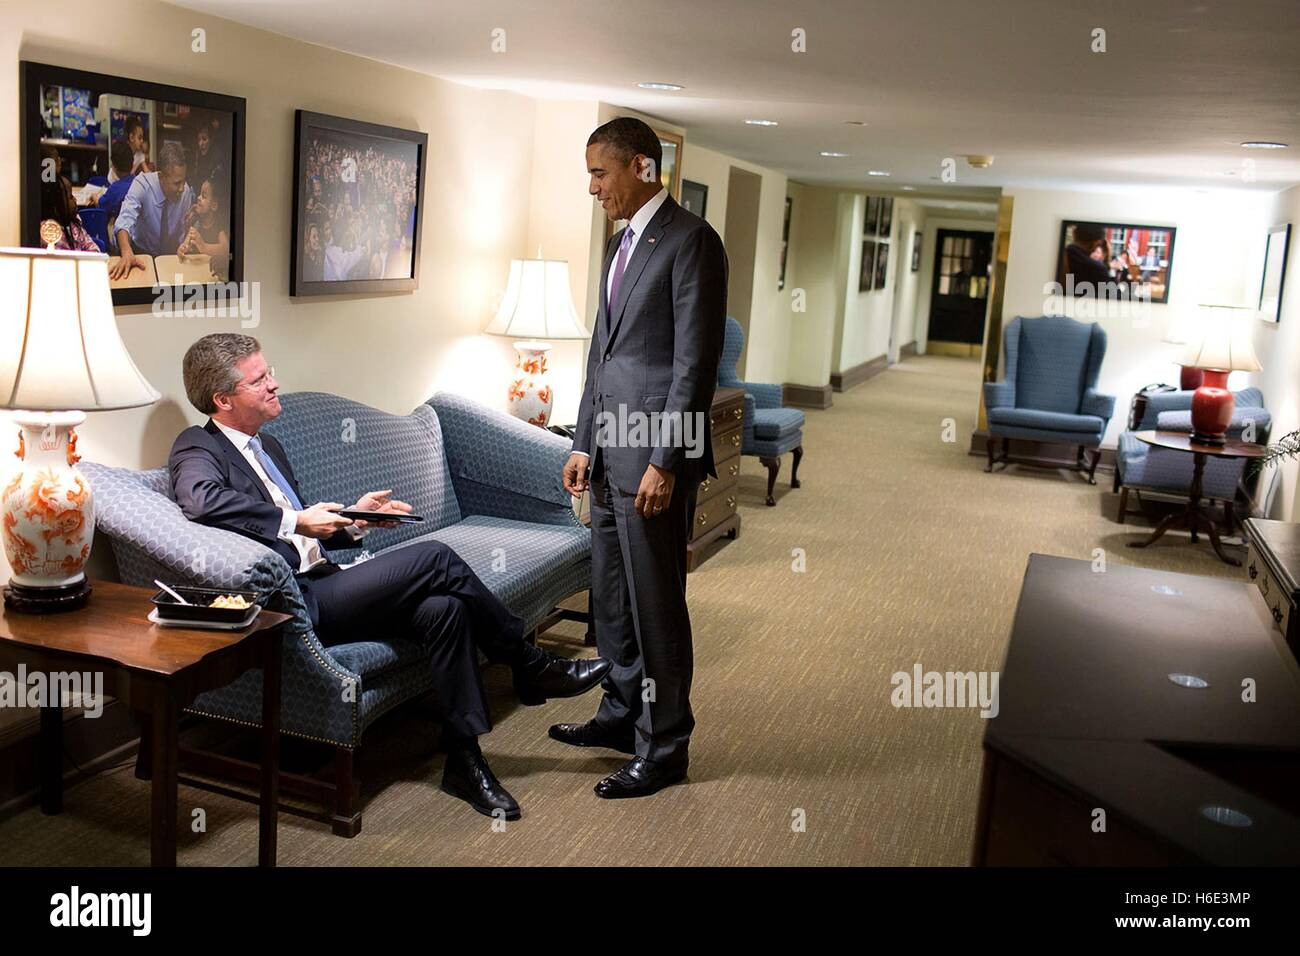 U.S. President Barack Obama talks with Office of Management and Budget Director Shaun Donovan in the White House - Stock Image